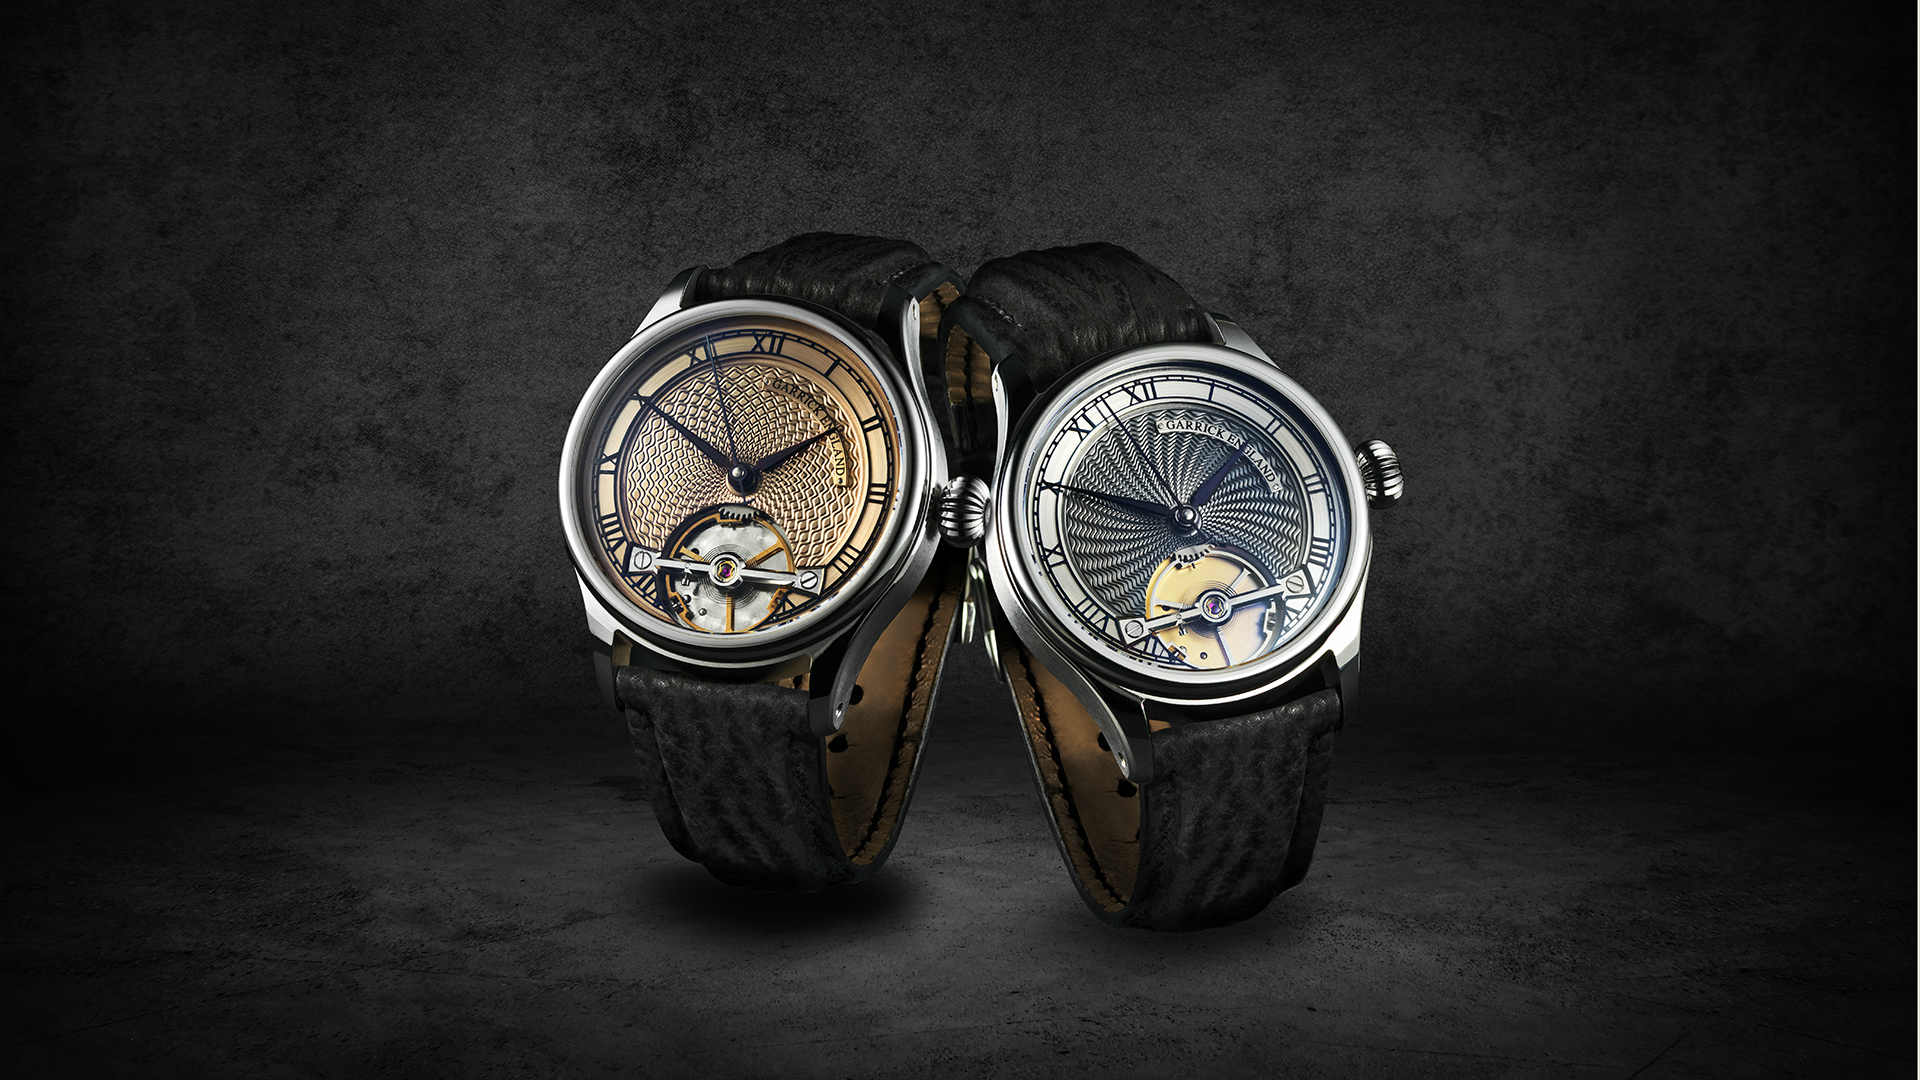 The new British S2 timepiece by Garrick Watchmakers